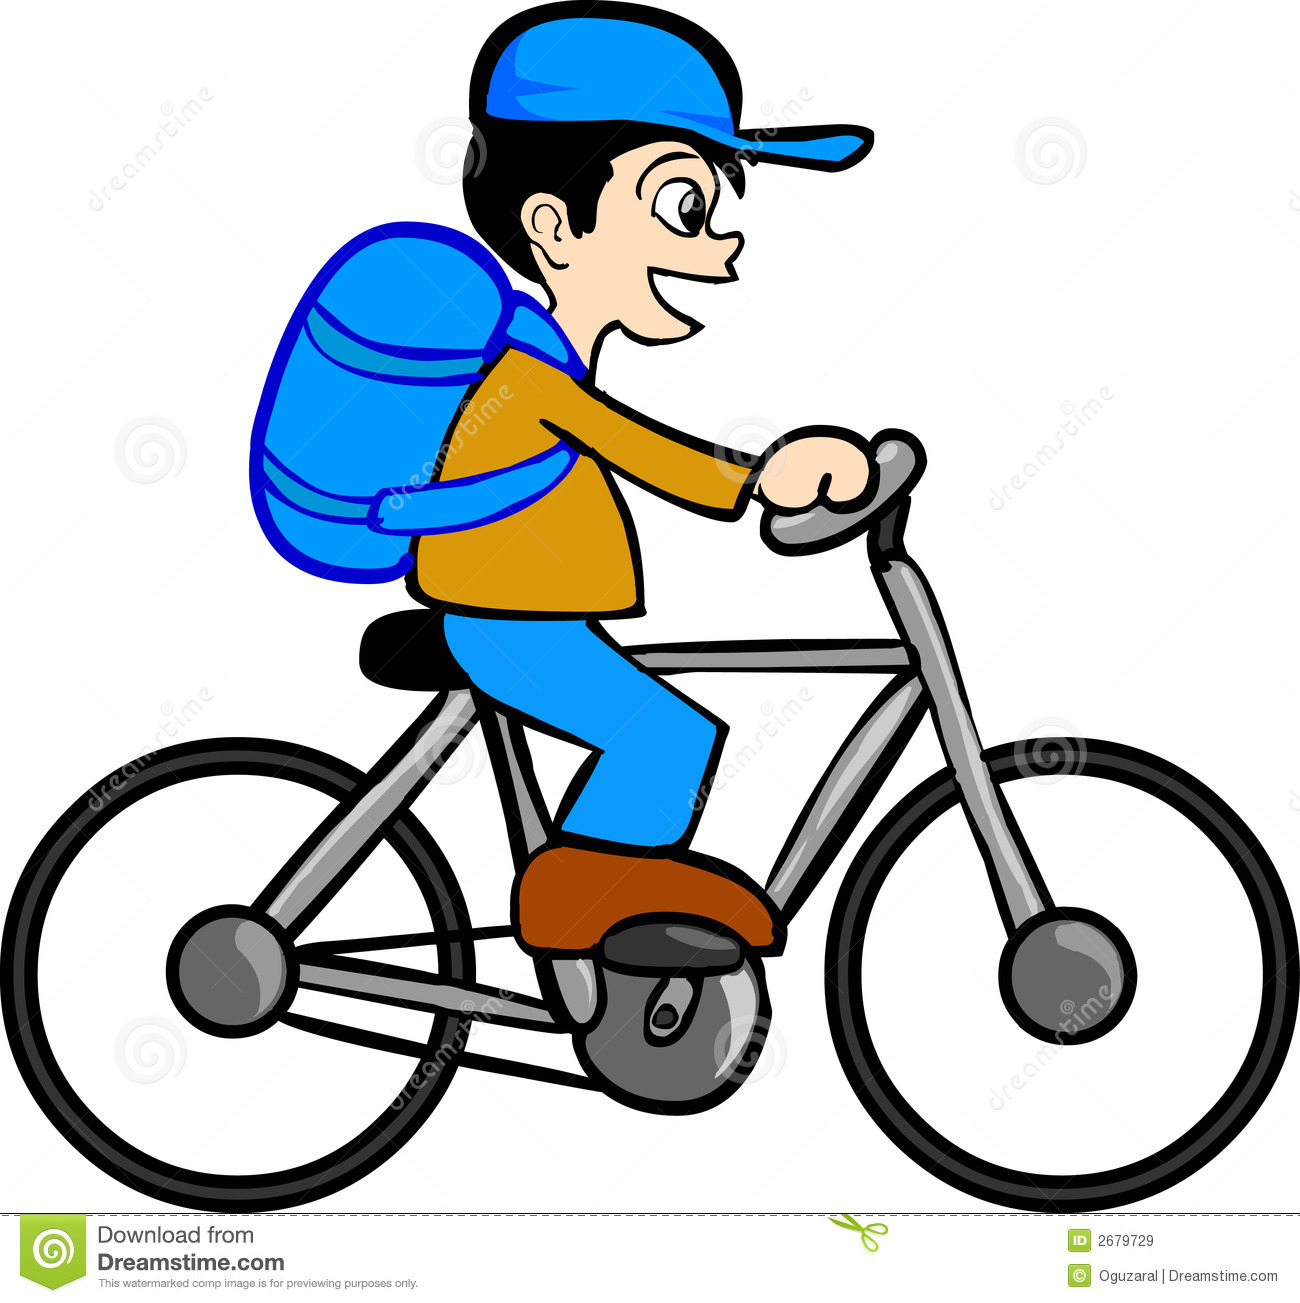 Biker clipart riding bicycle Bike Collection Young  bike: